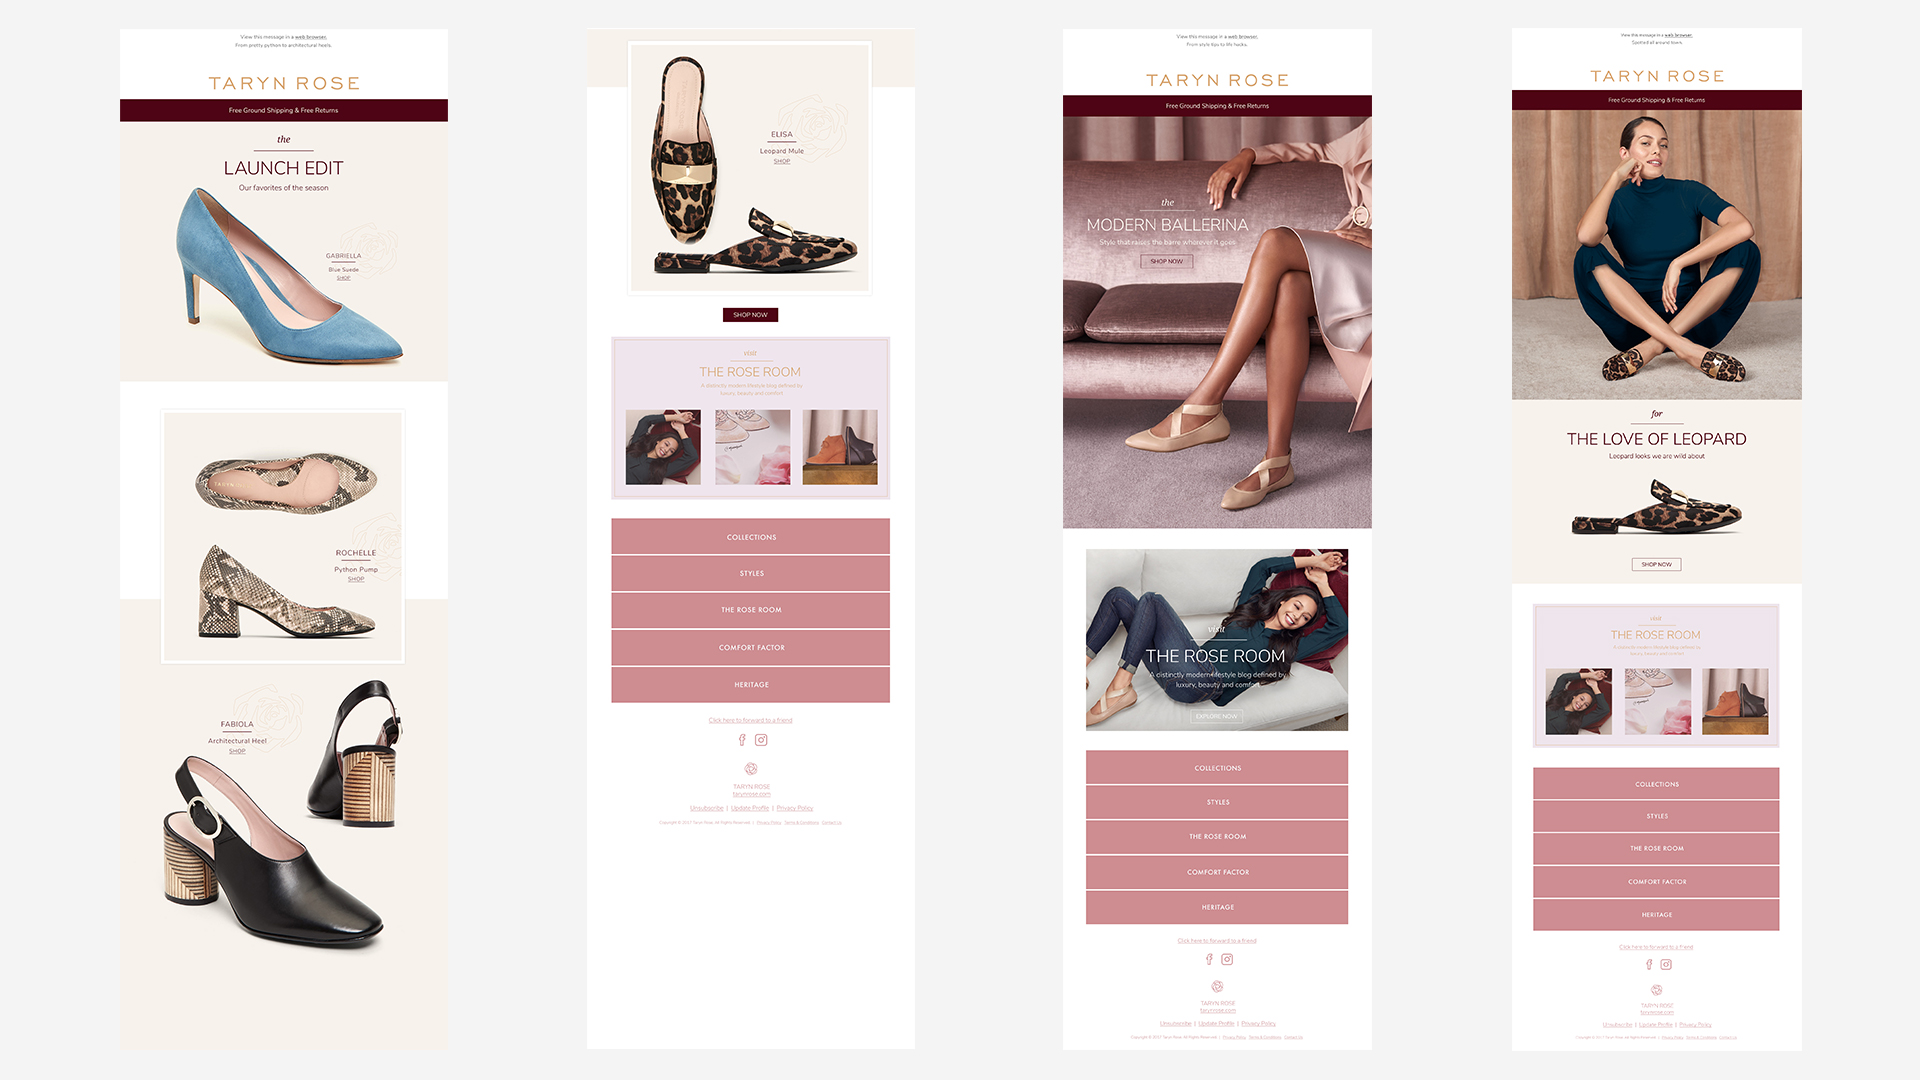 Collaberated with the marketing team as an Art Diretor, to create compelling e-commerce material for the Taryn Rose brand..